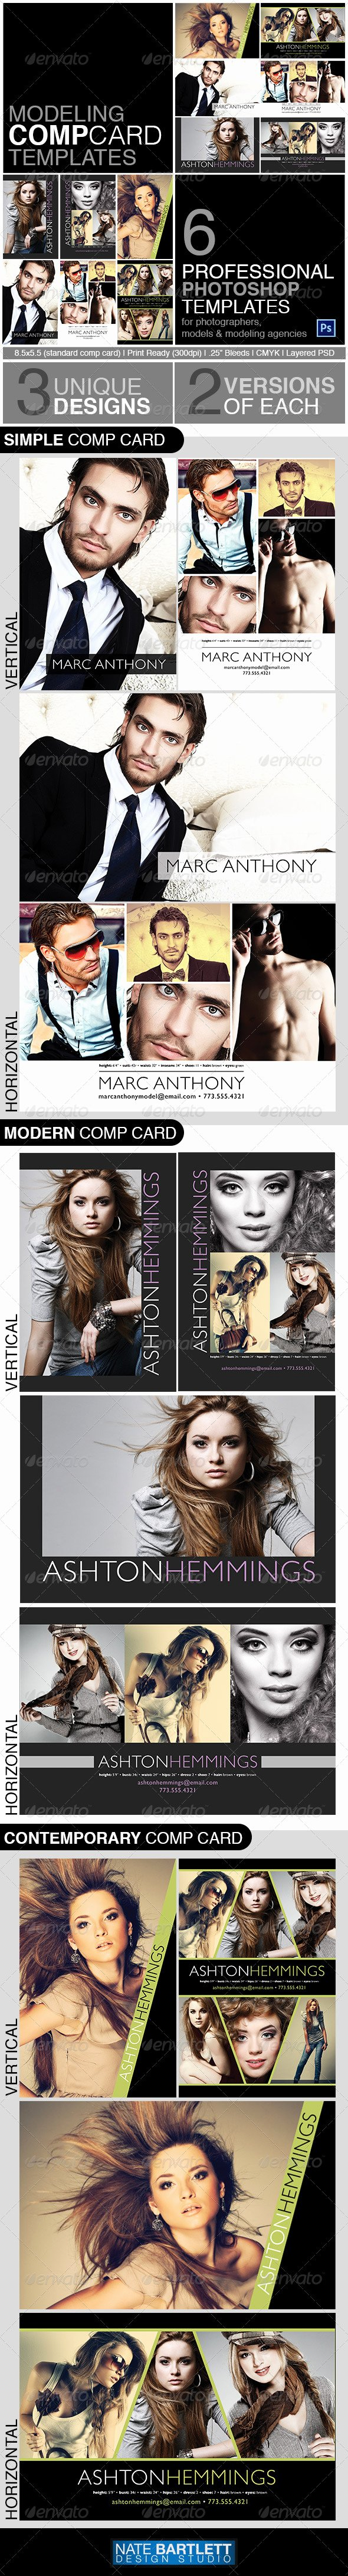 Model Comp Card Template Free Best Of Model P Card Template Kit by Natedilli